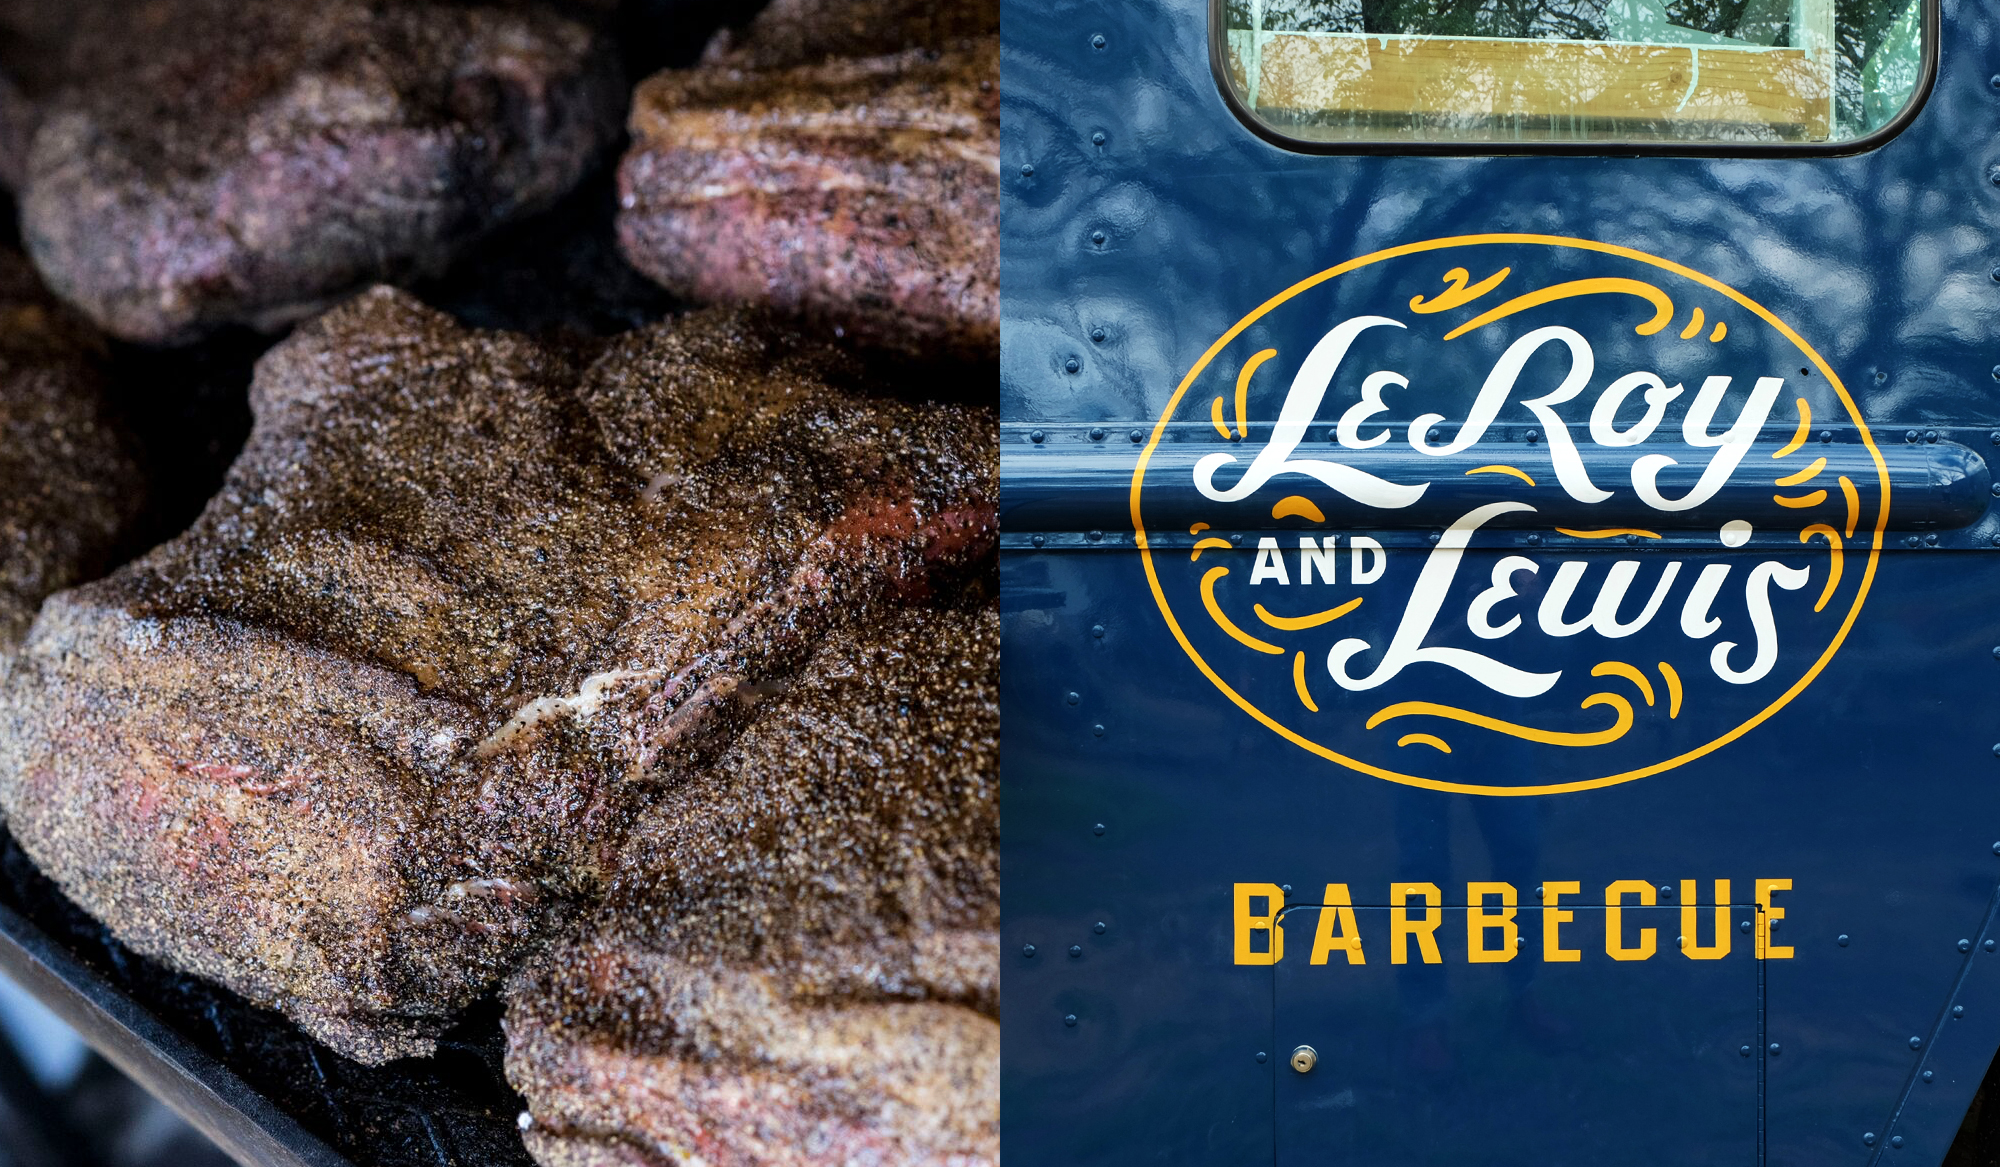 Leroy and Lewis Barbecue